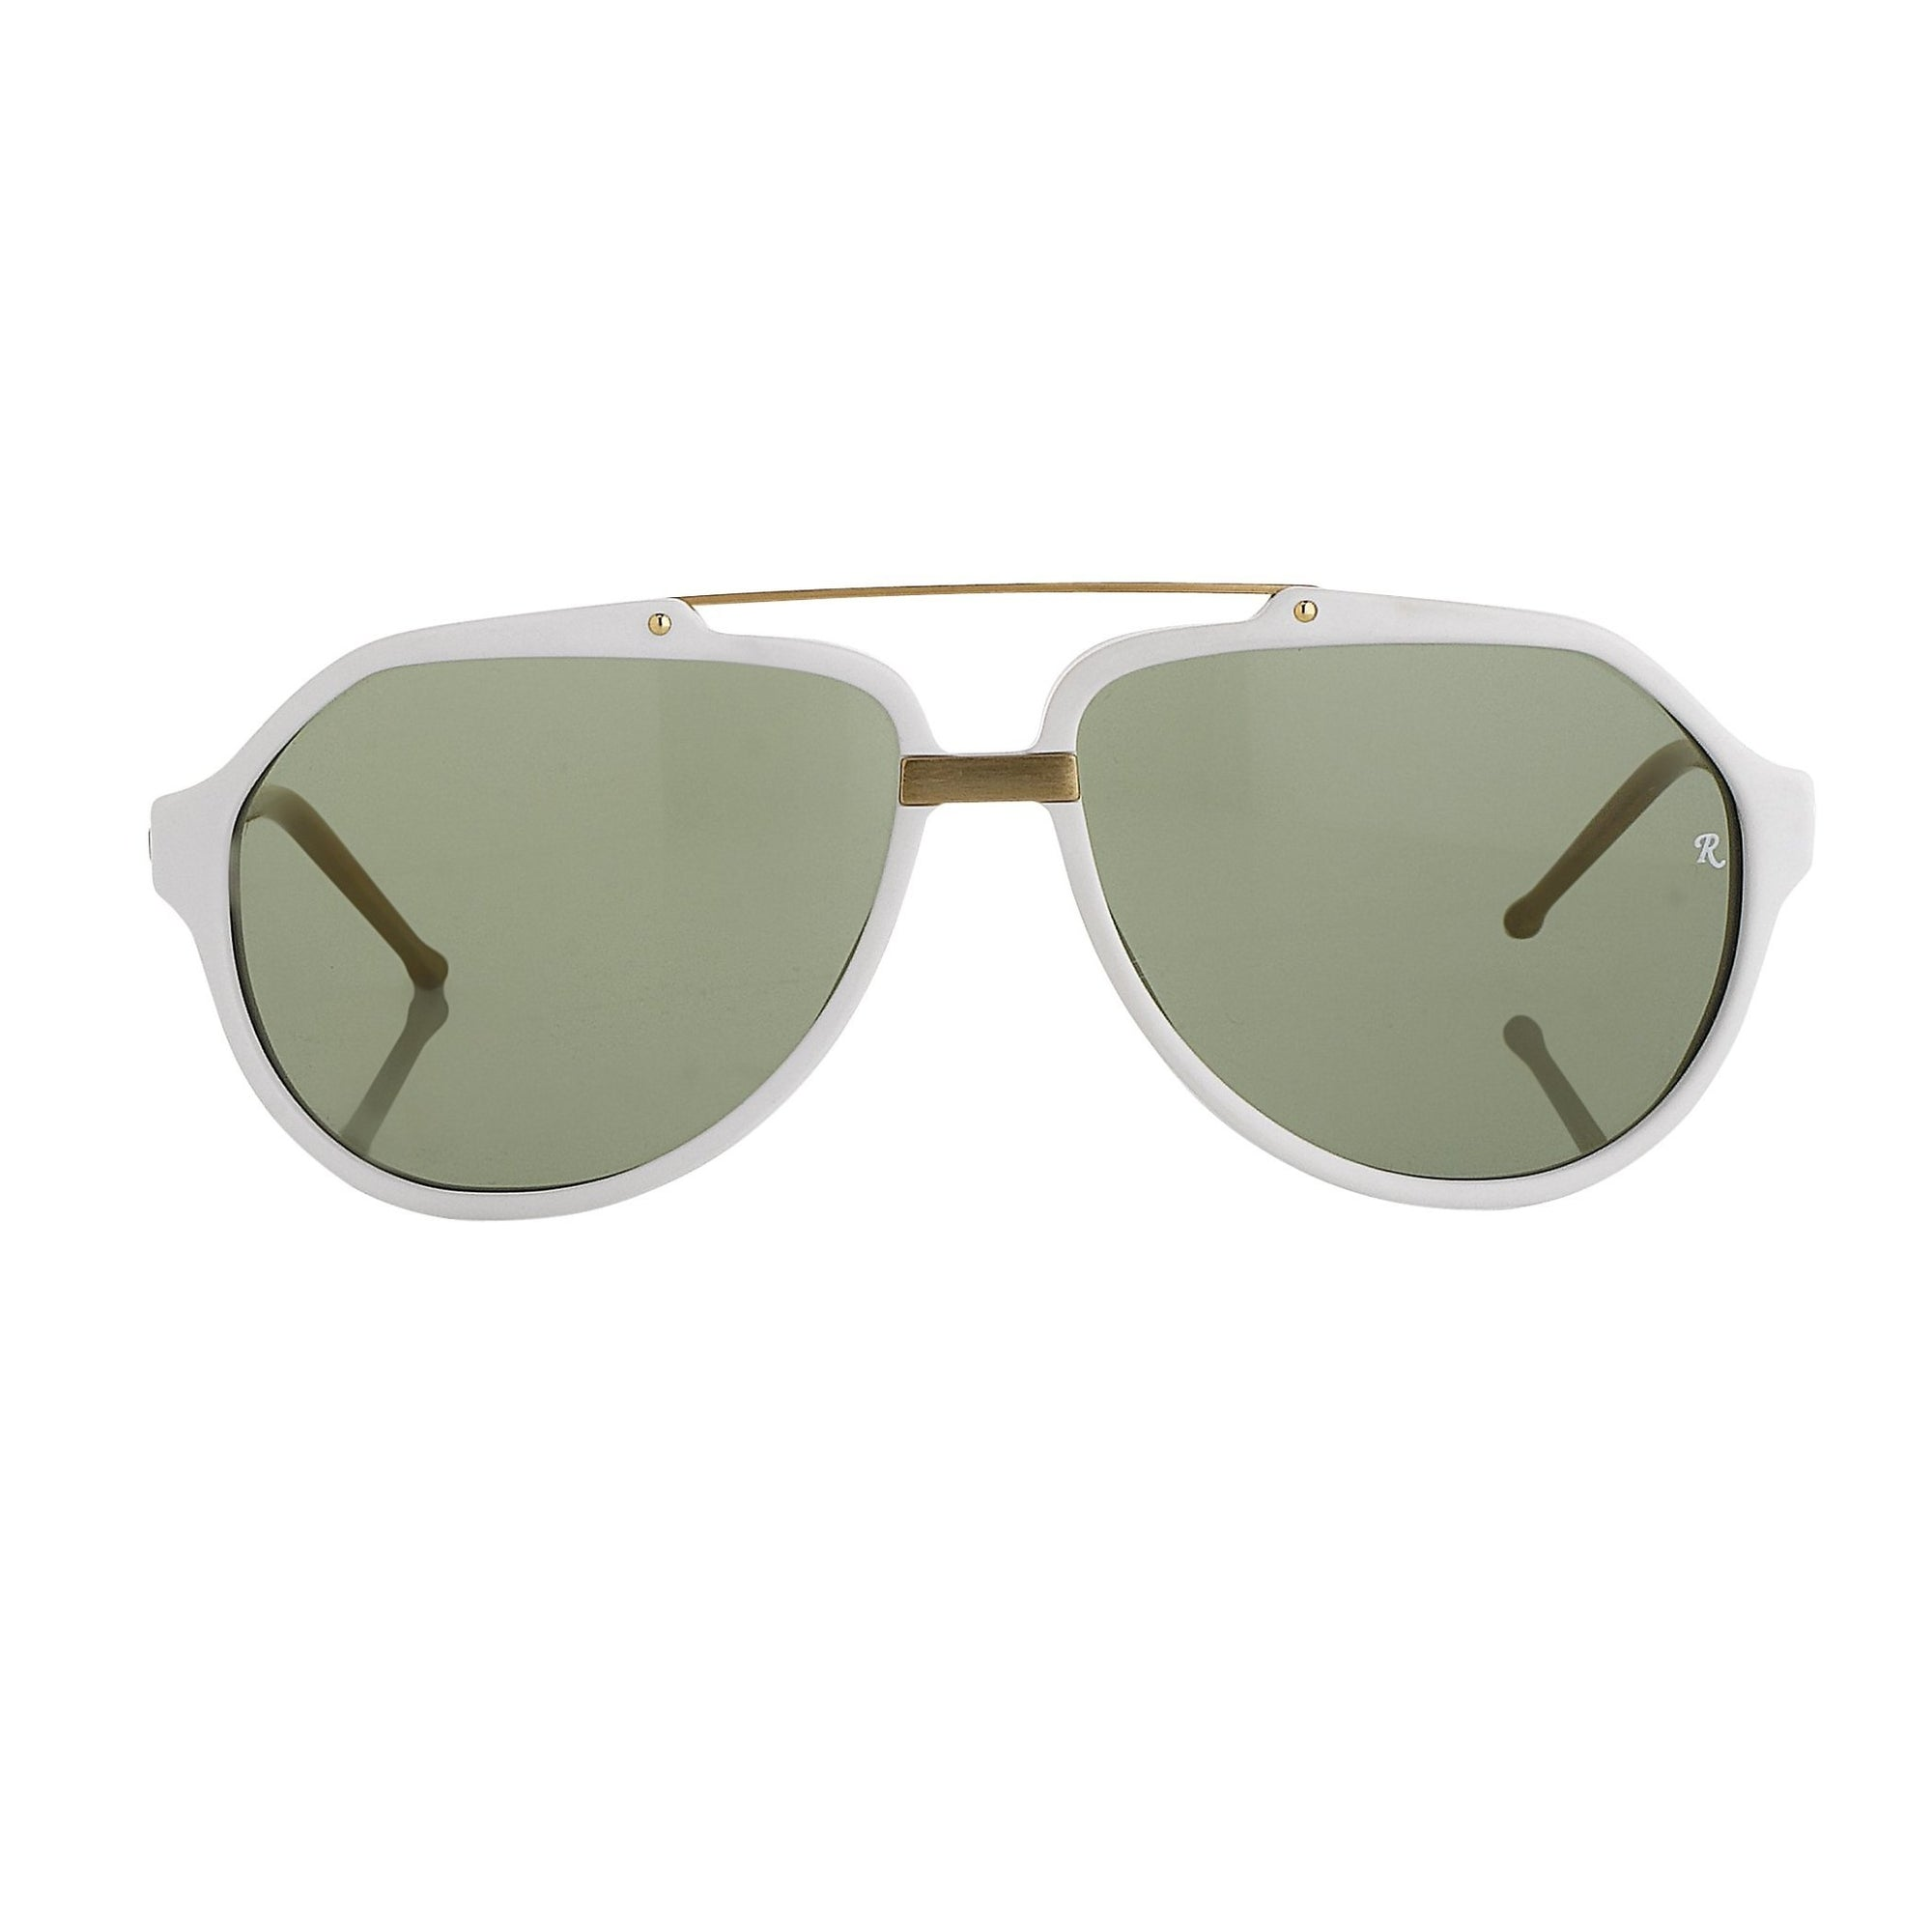 Raf Simons Sunglasses White Brushed Gold and Green Lenses - RAF14C7SUN - Watches & Crystals